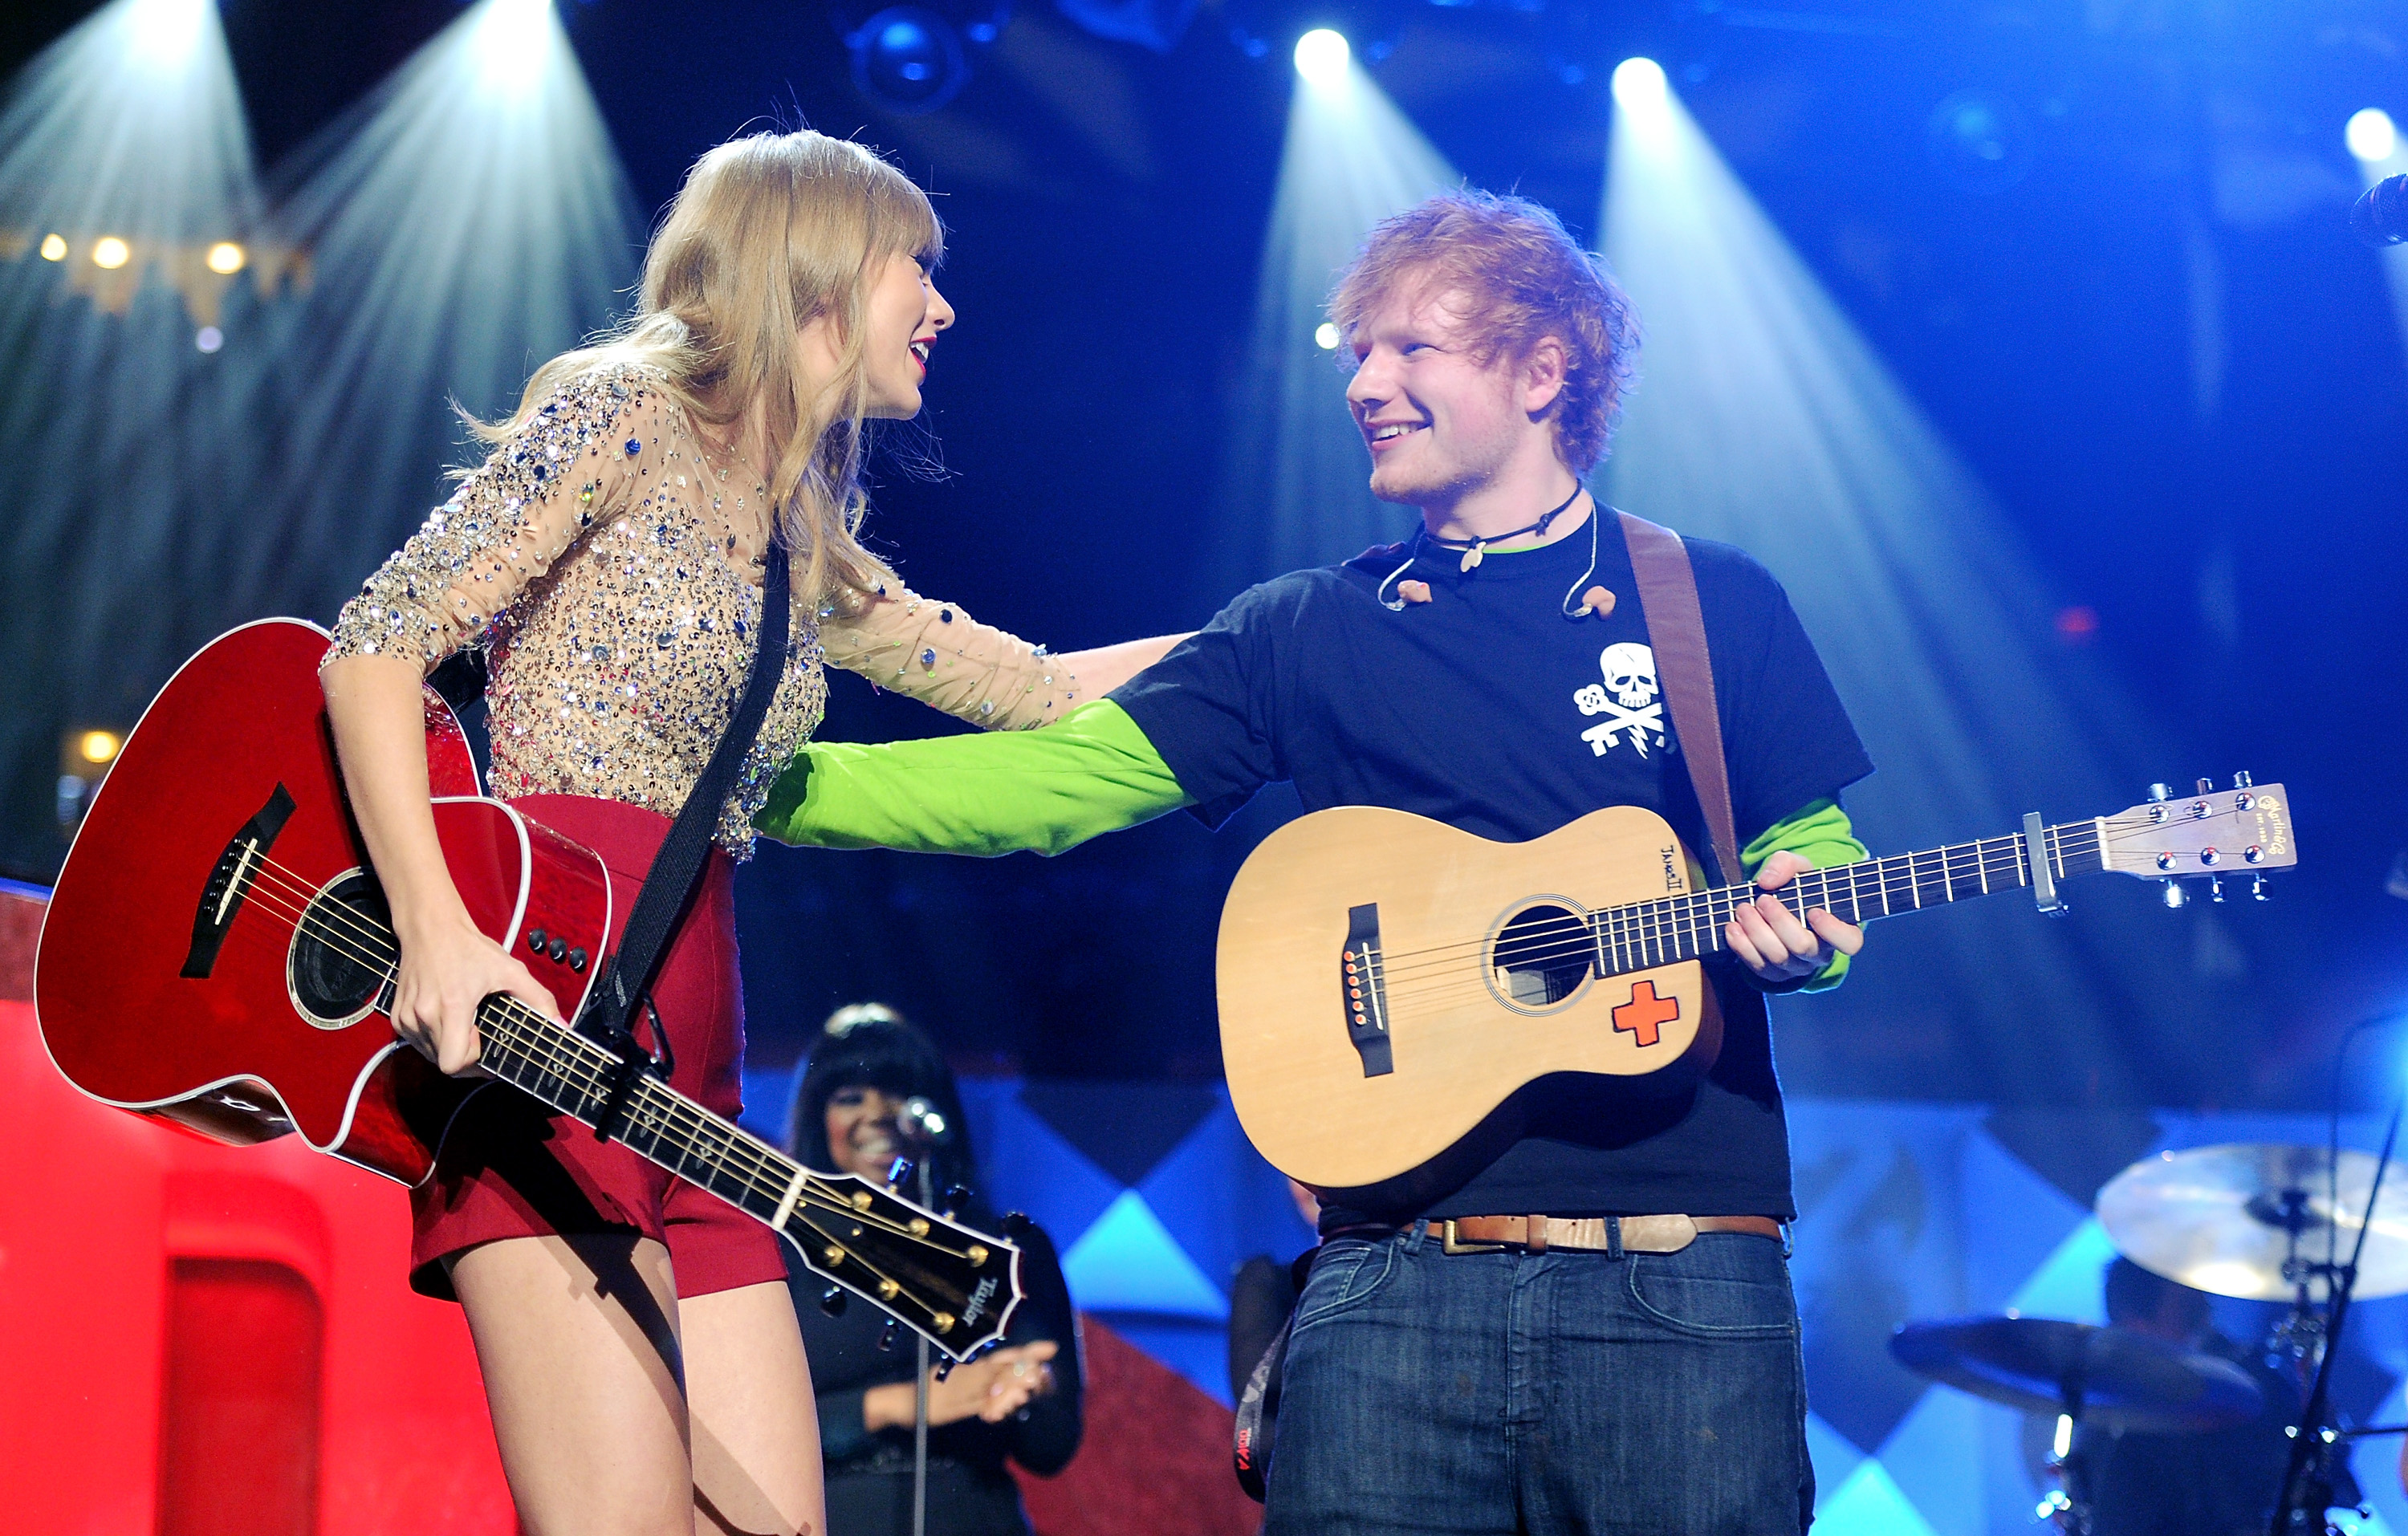 Singers Taylor Swift and Ed Sheeran perform together at Z100's Jingle Ball 2012 at Madison Square Garden on Friday Dec. 7, 2012 in New York City.